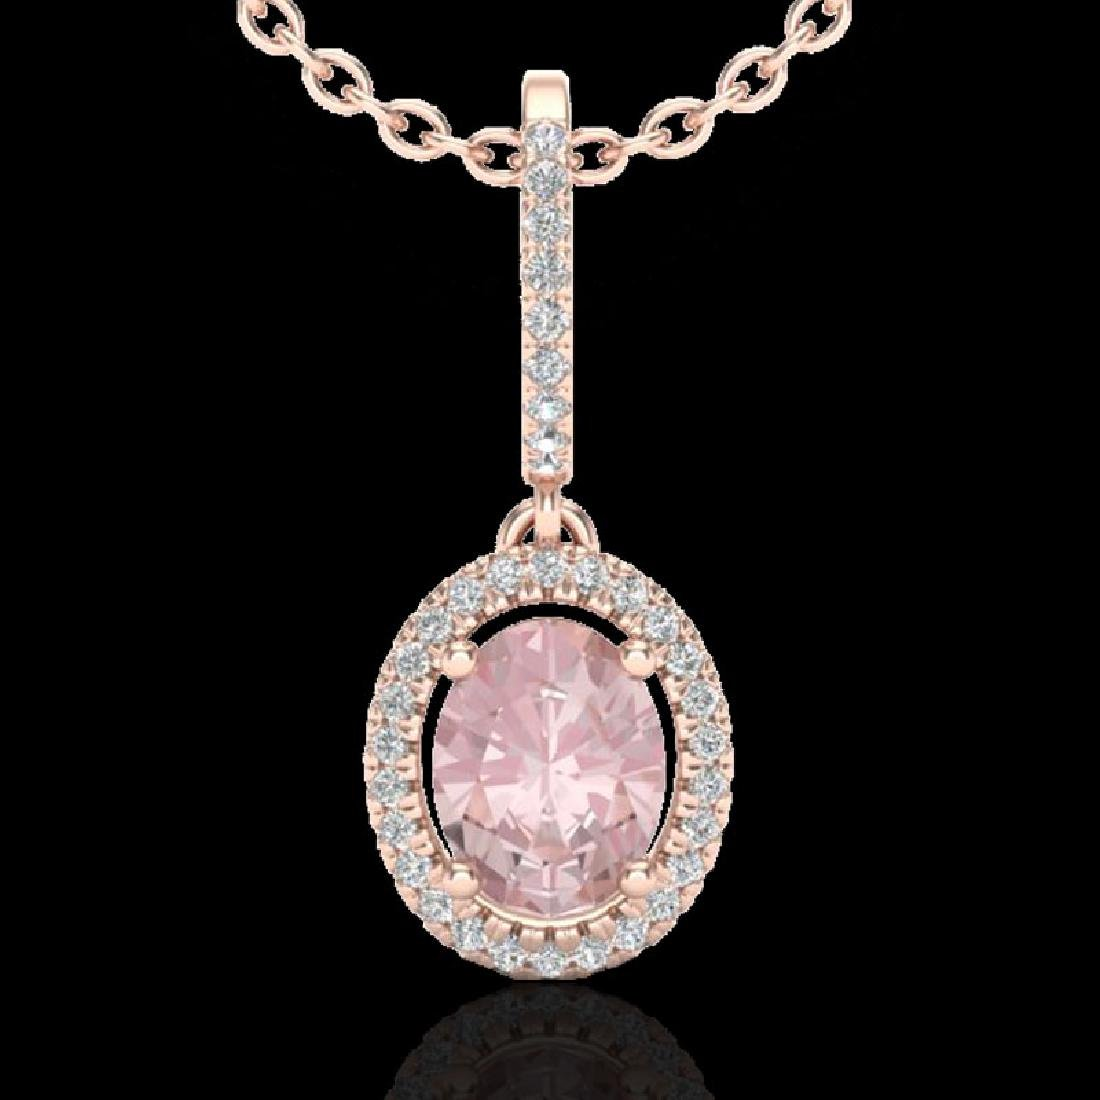 1.60 CTW Morganite & Micro VS/SI Diamond Necklace